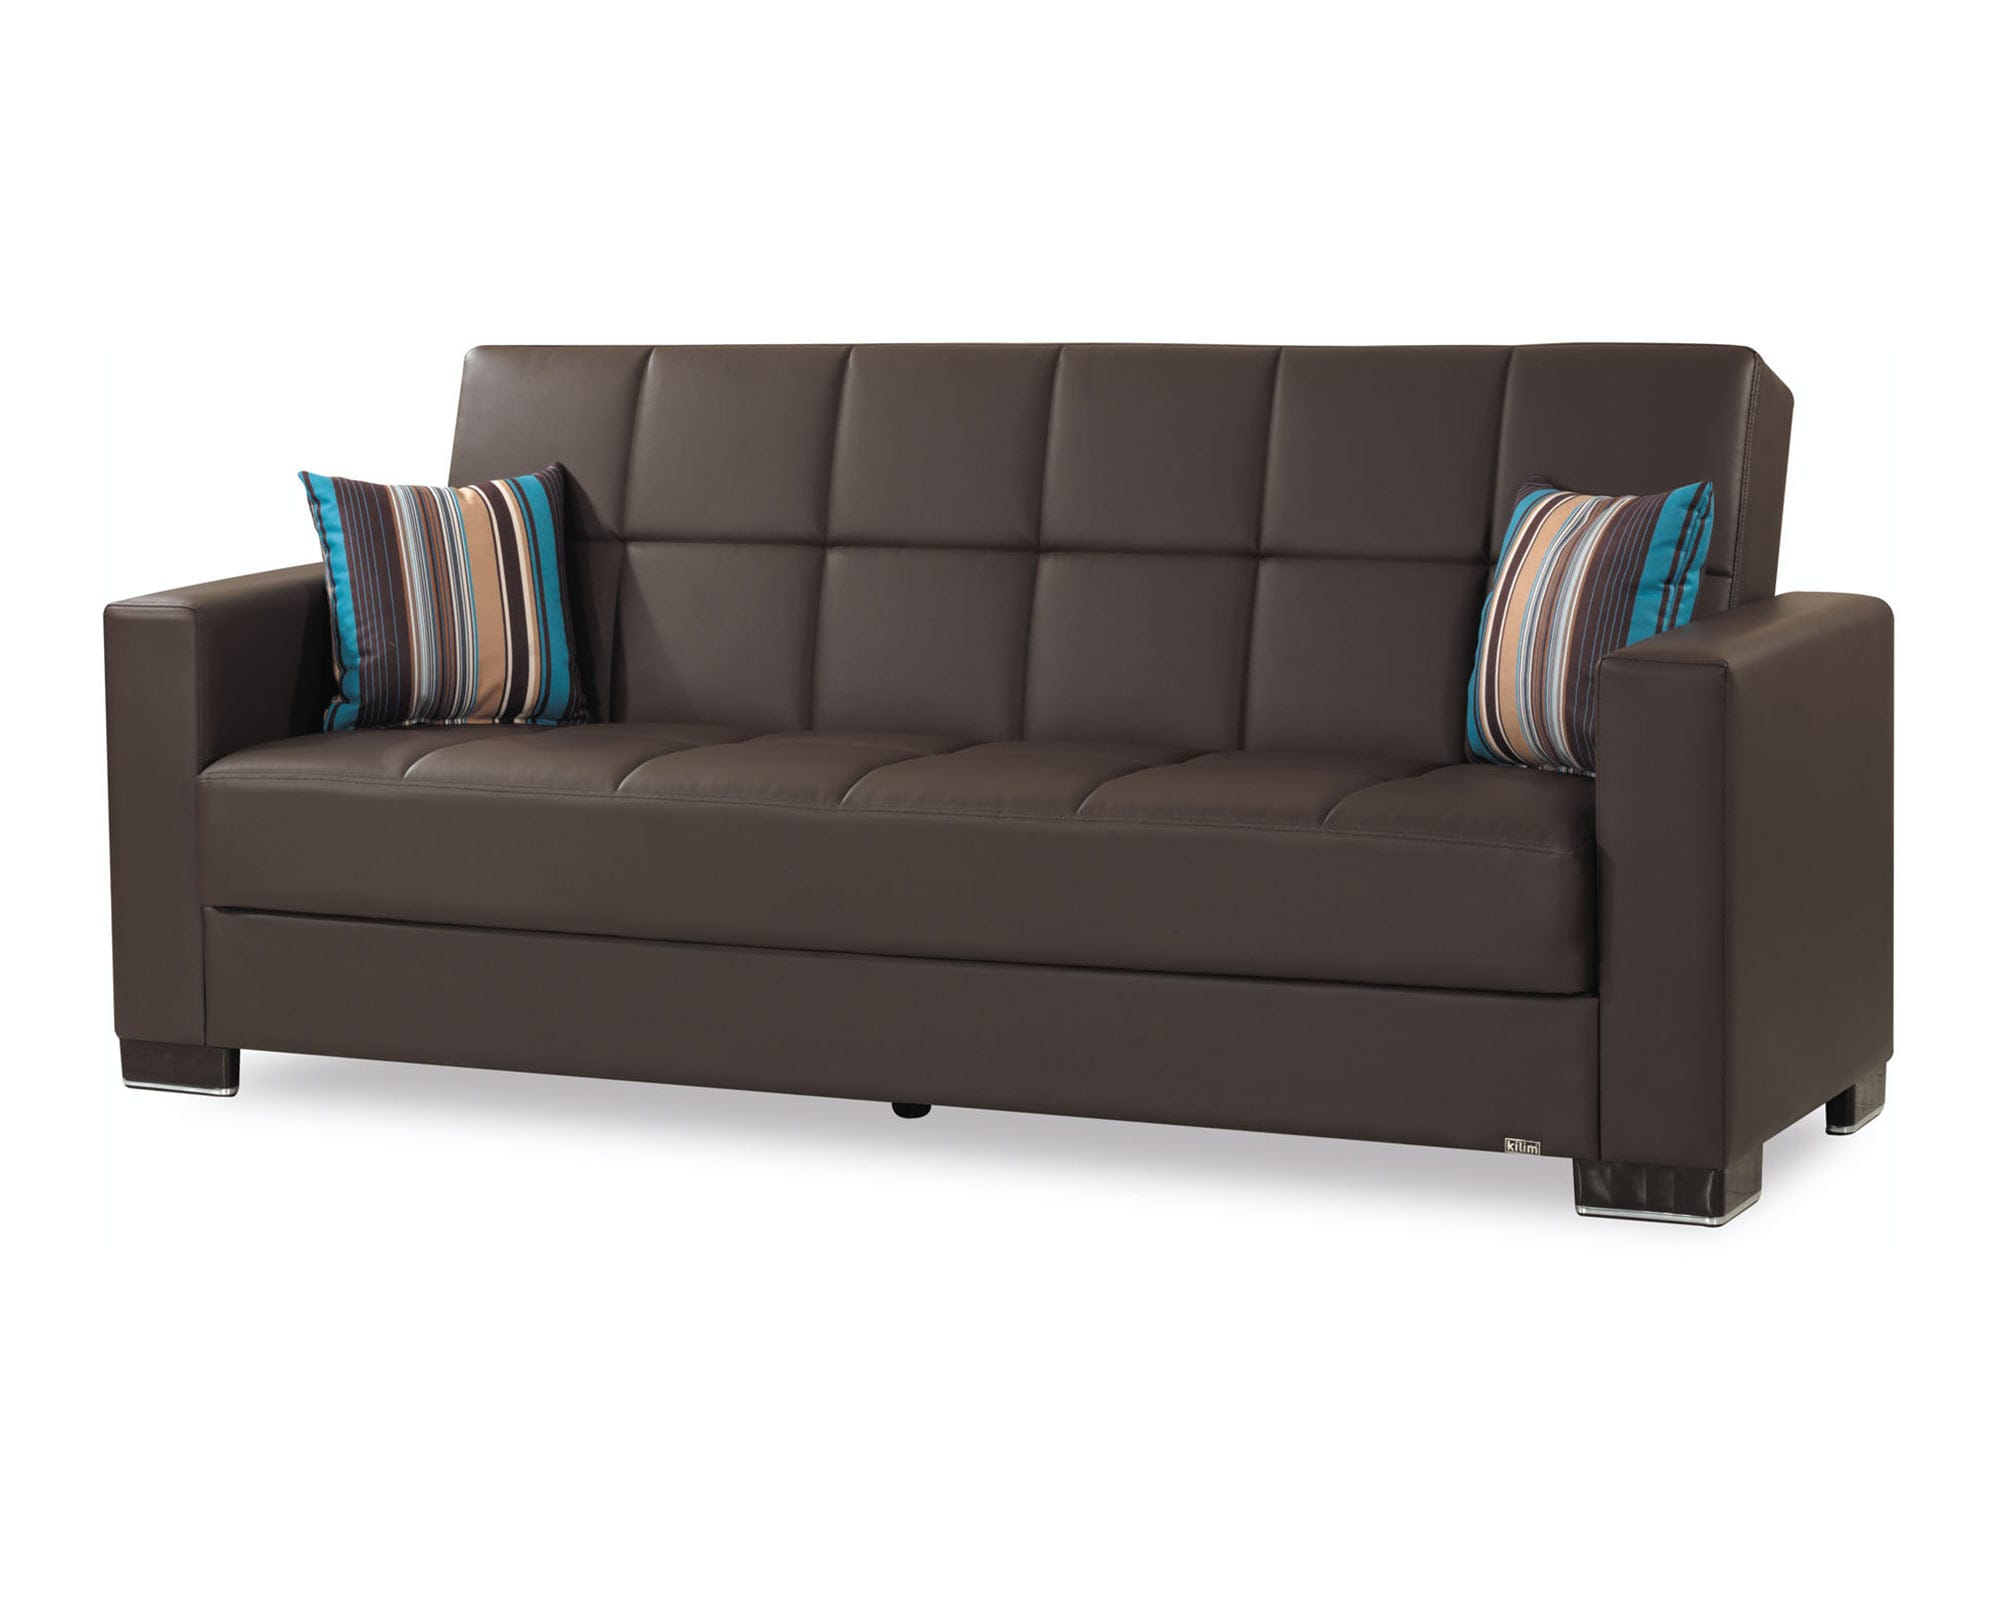 Armada Brown PU Leather Sofa Bed by Casamode